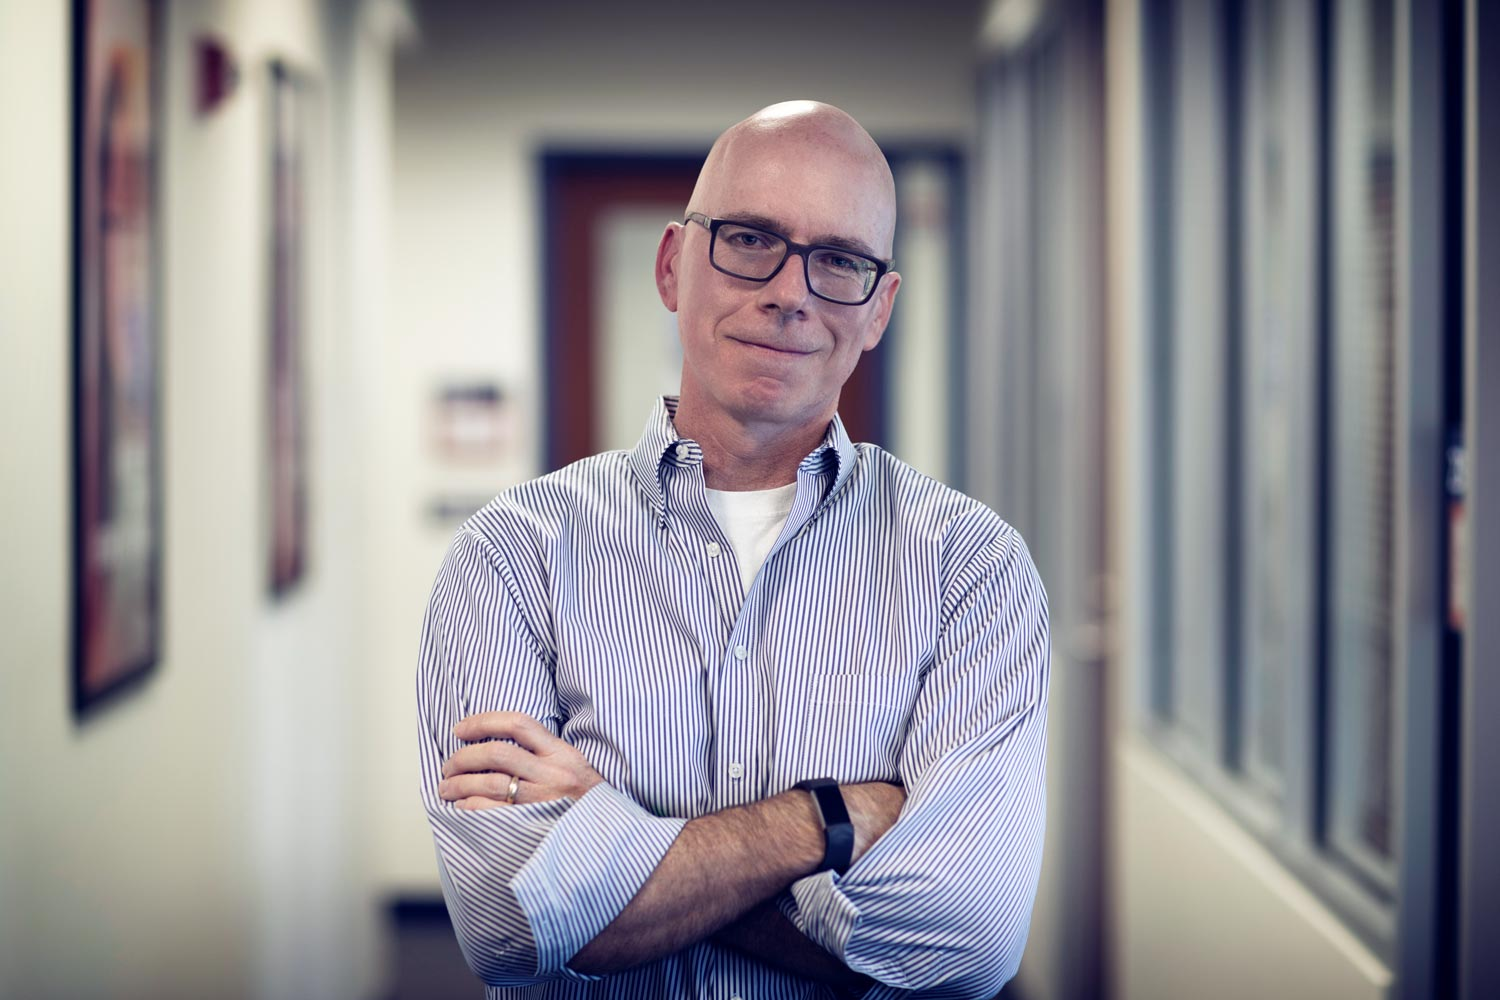 In addition to his appointment in UVA's Career Center, Tim Davis is a clinical psychologist who teaches courses in resilience and leadership.